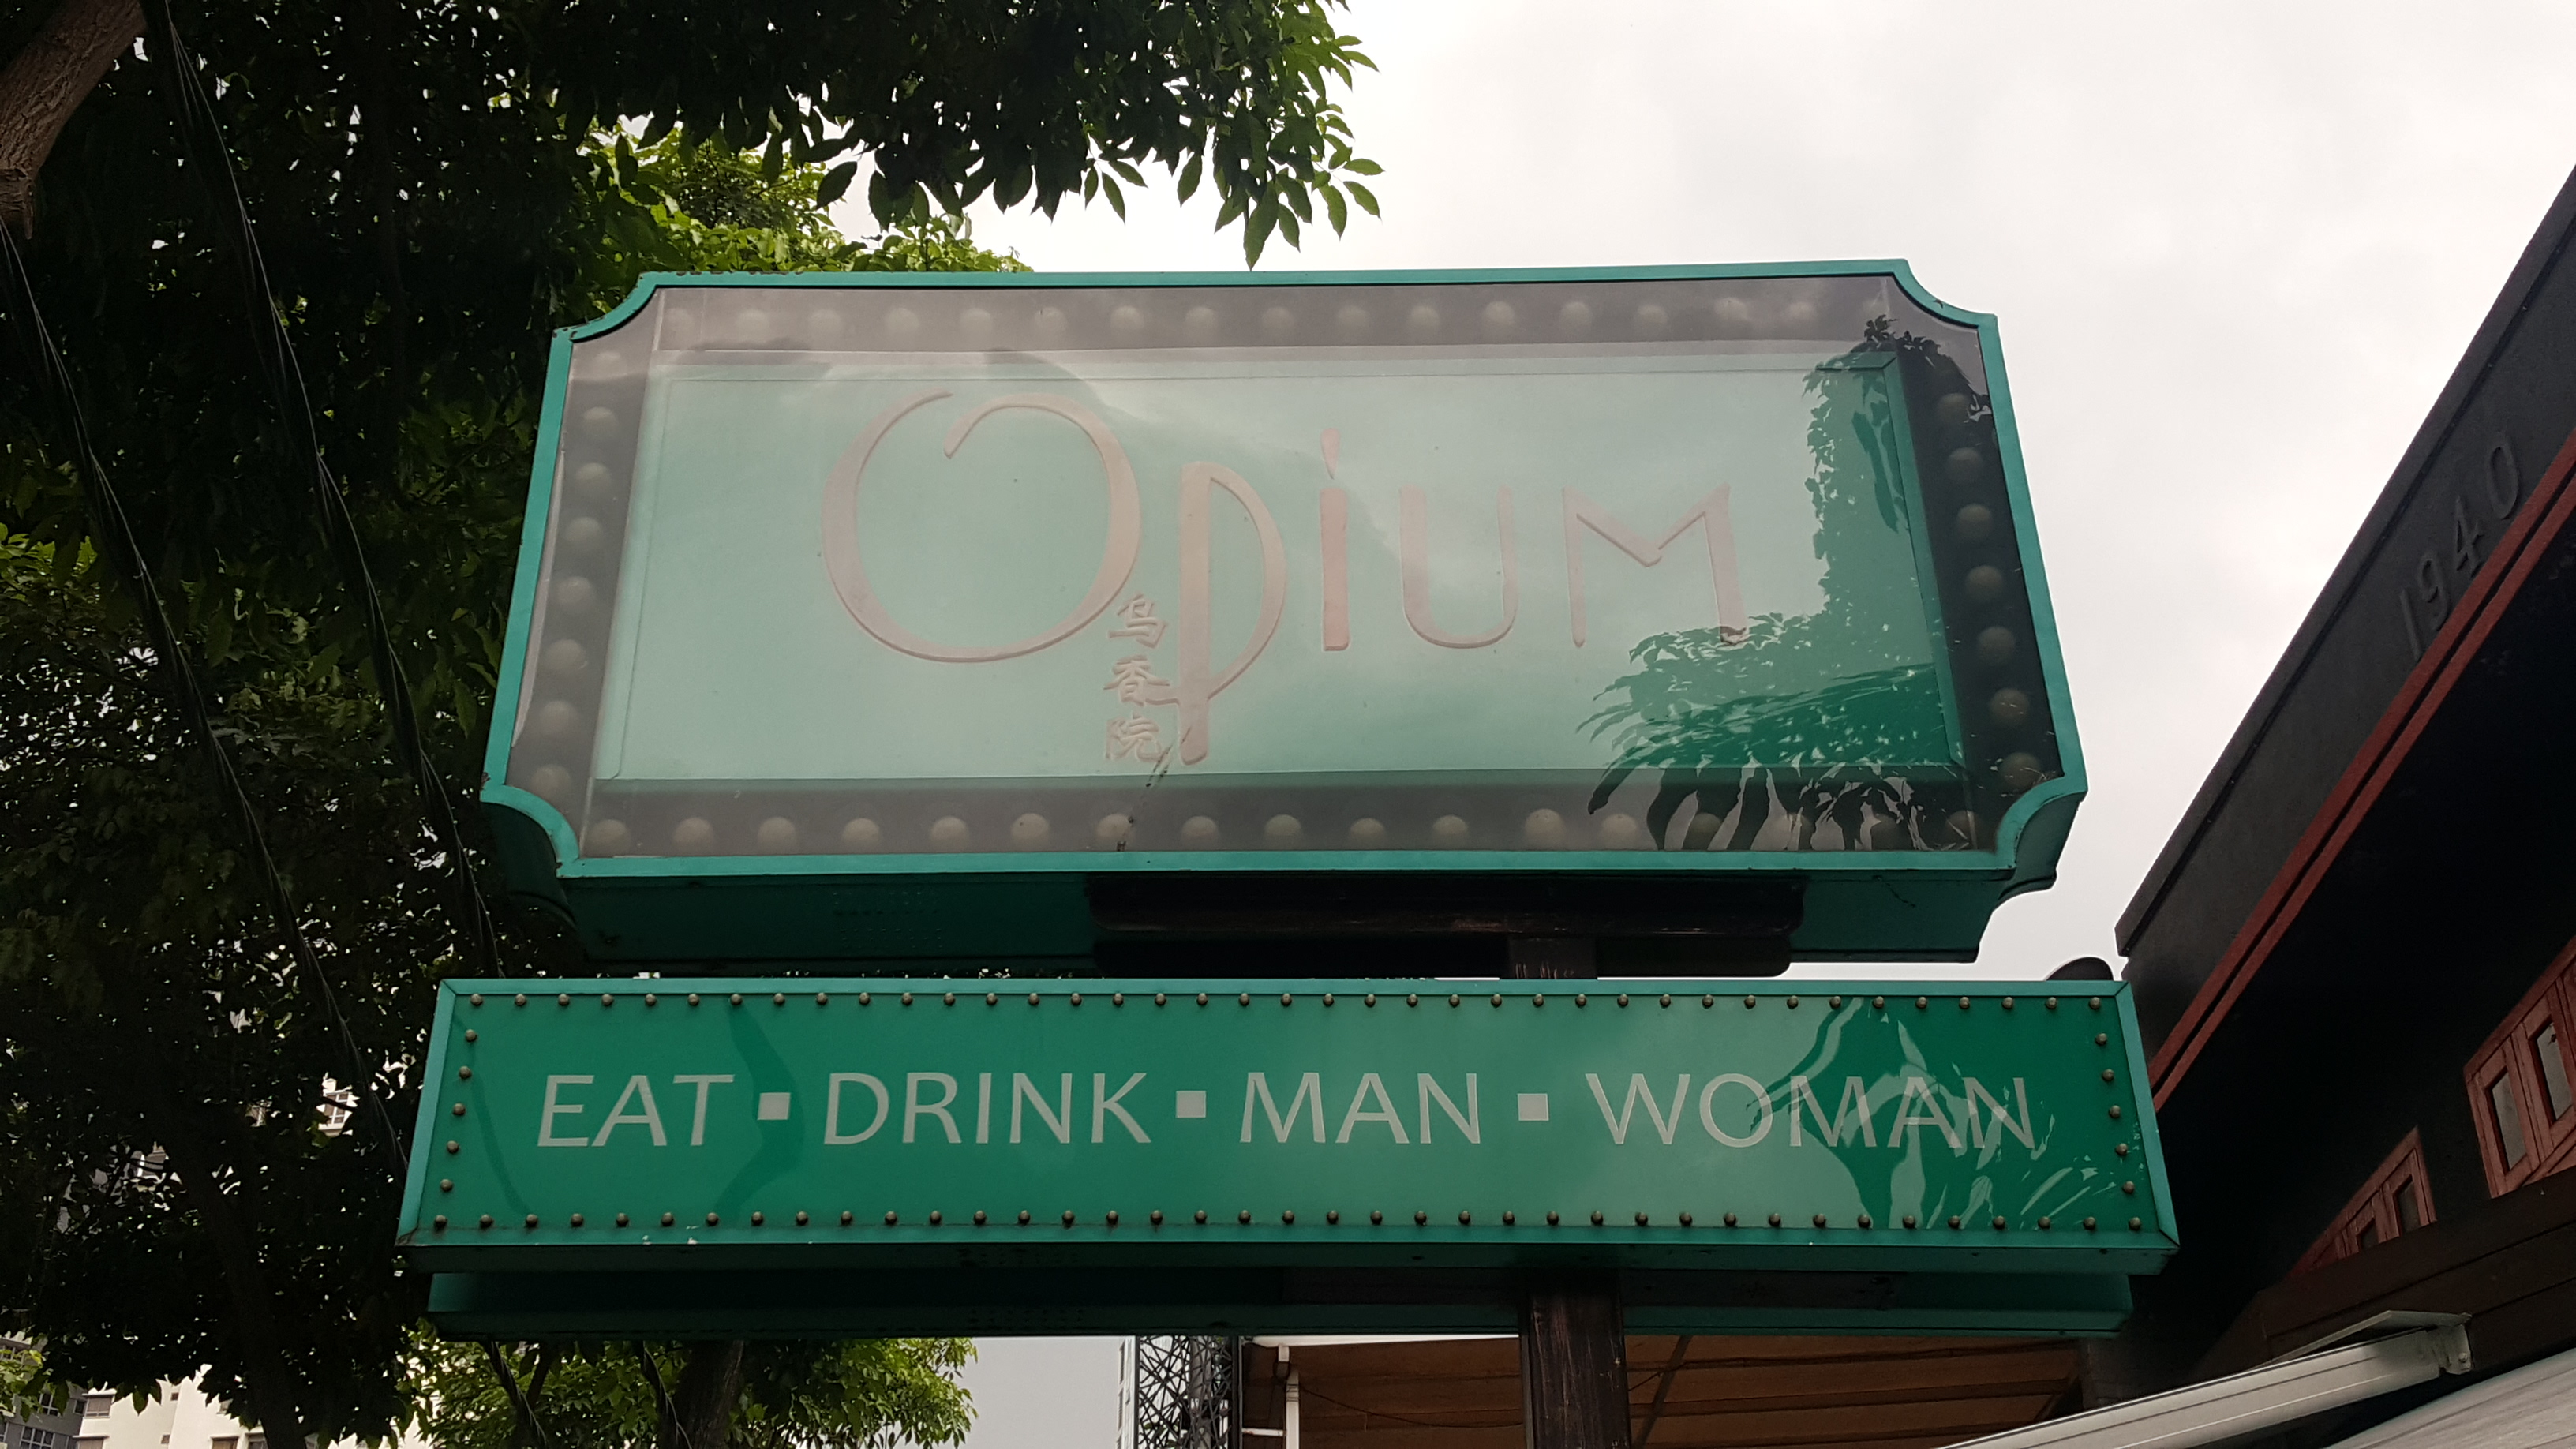 A sign for a bar called Opium, with a tagline Eat, Drink, Man, Woman